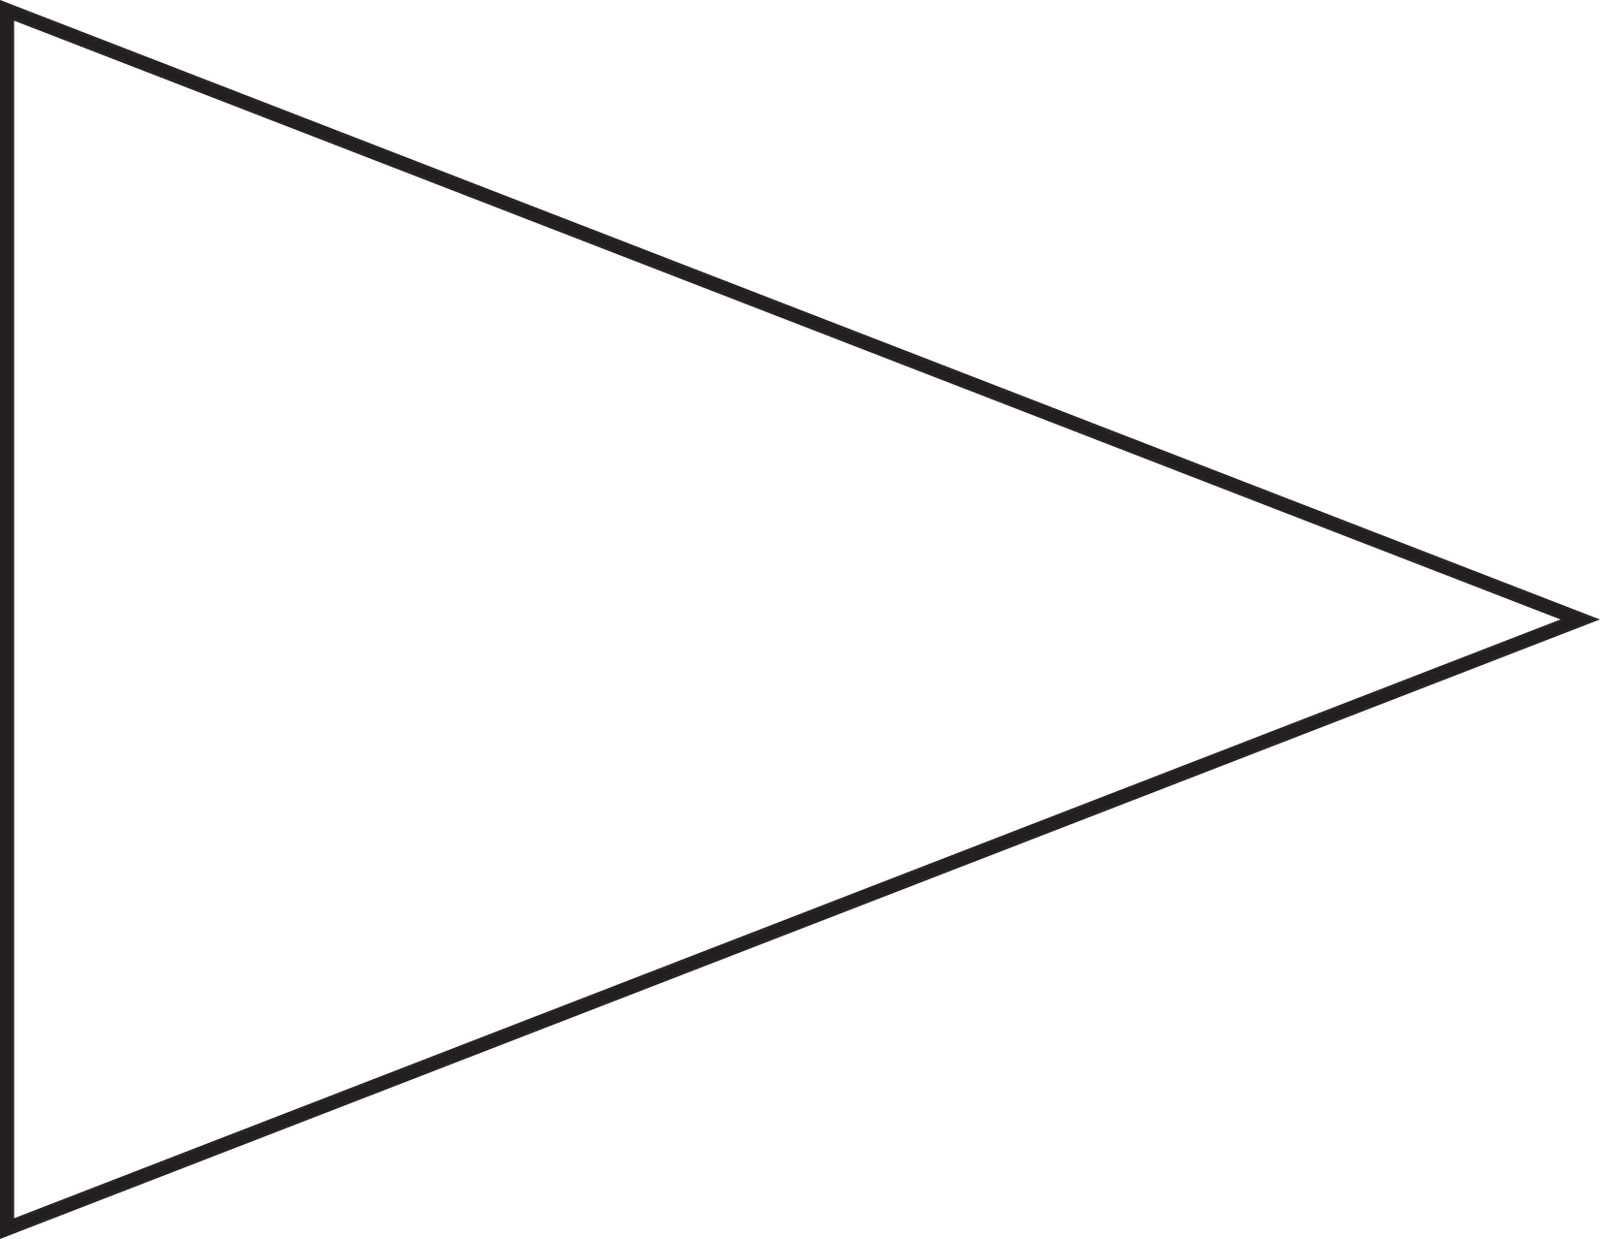 Free Pennant Banner Template, Download Free Clip Art, Free Regarding Printable Pennant Banner Template Free